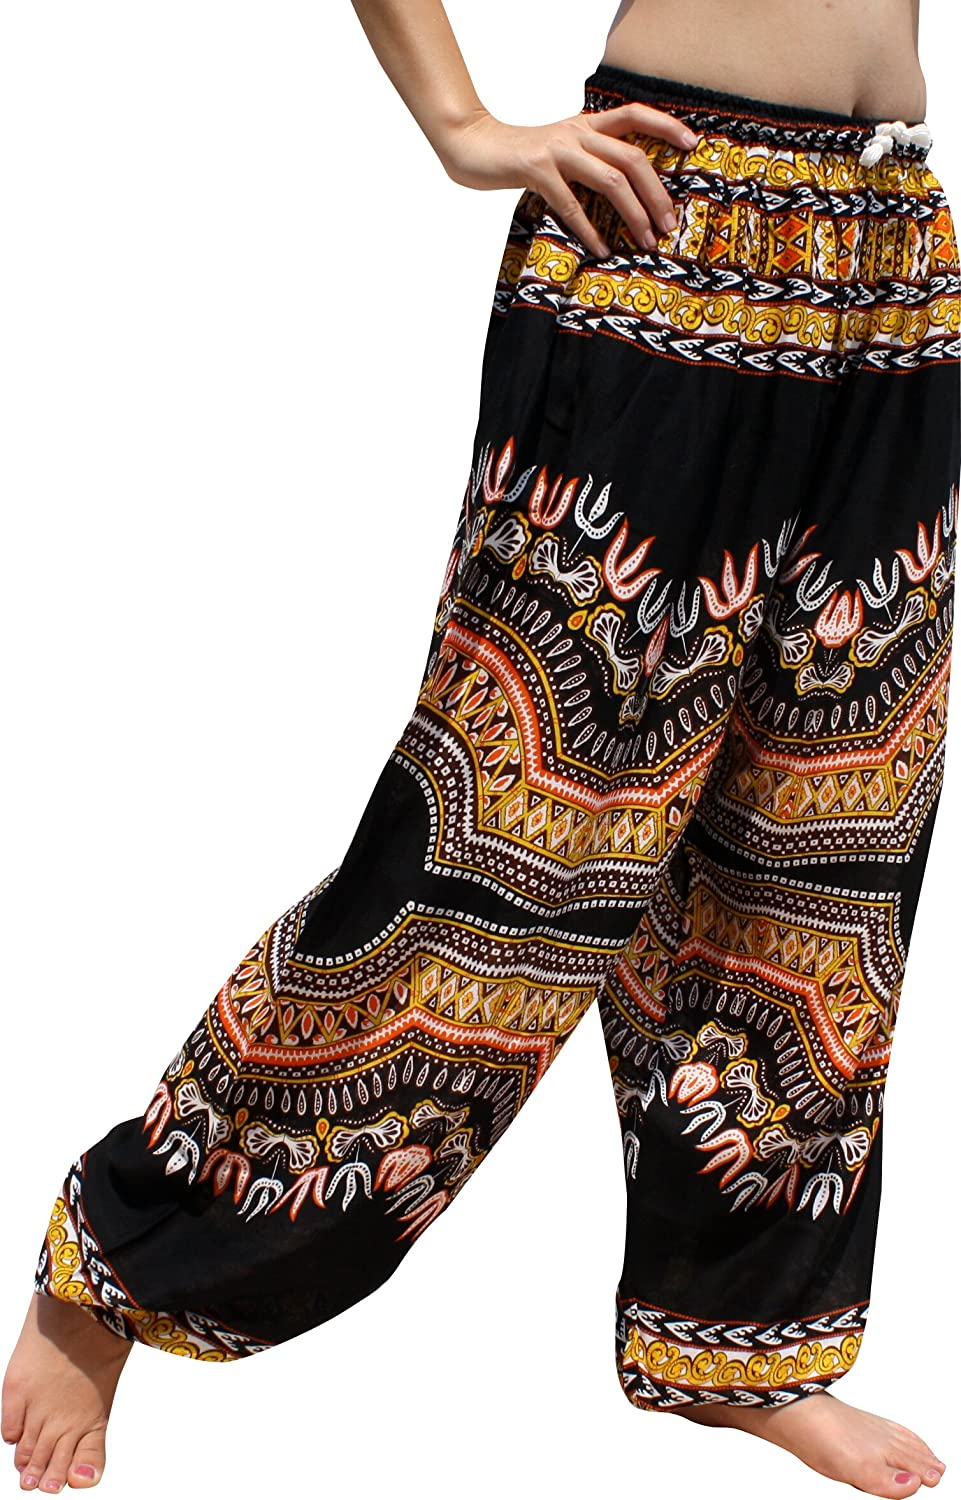 Full Funk PANTS メンズ B07DPMR1B4 Black Large|Dashiki PANTS Black Dashiki Funk Black Large, 【byTRICO【バイトリコ】デザイン:308c22a2 --- ijpba.info